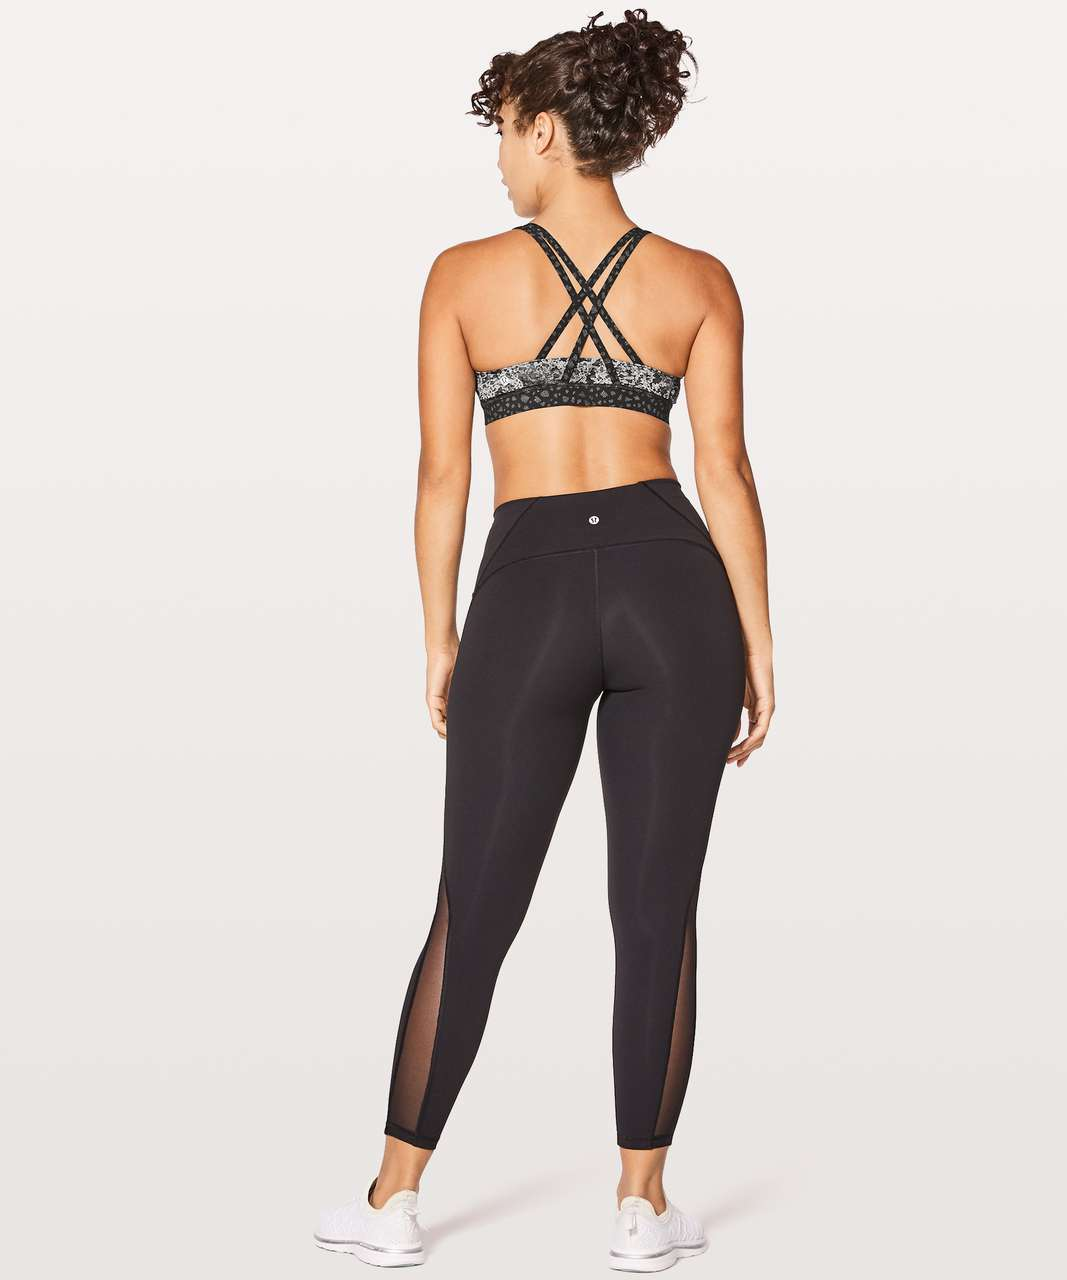 Lululemon Energy Bra - Overlace Energy Bra Ice Grey Black